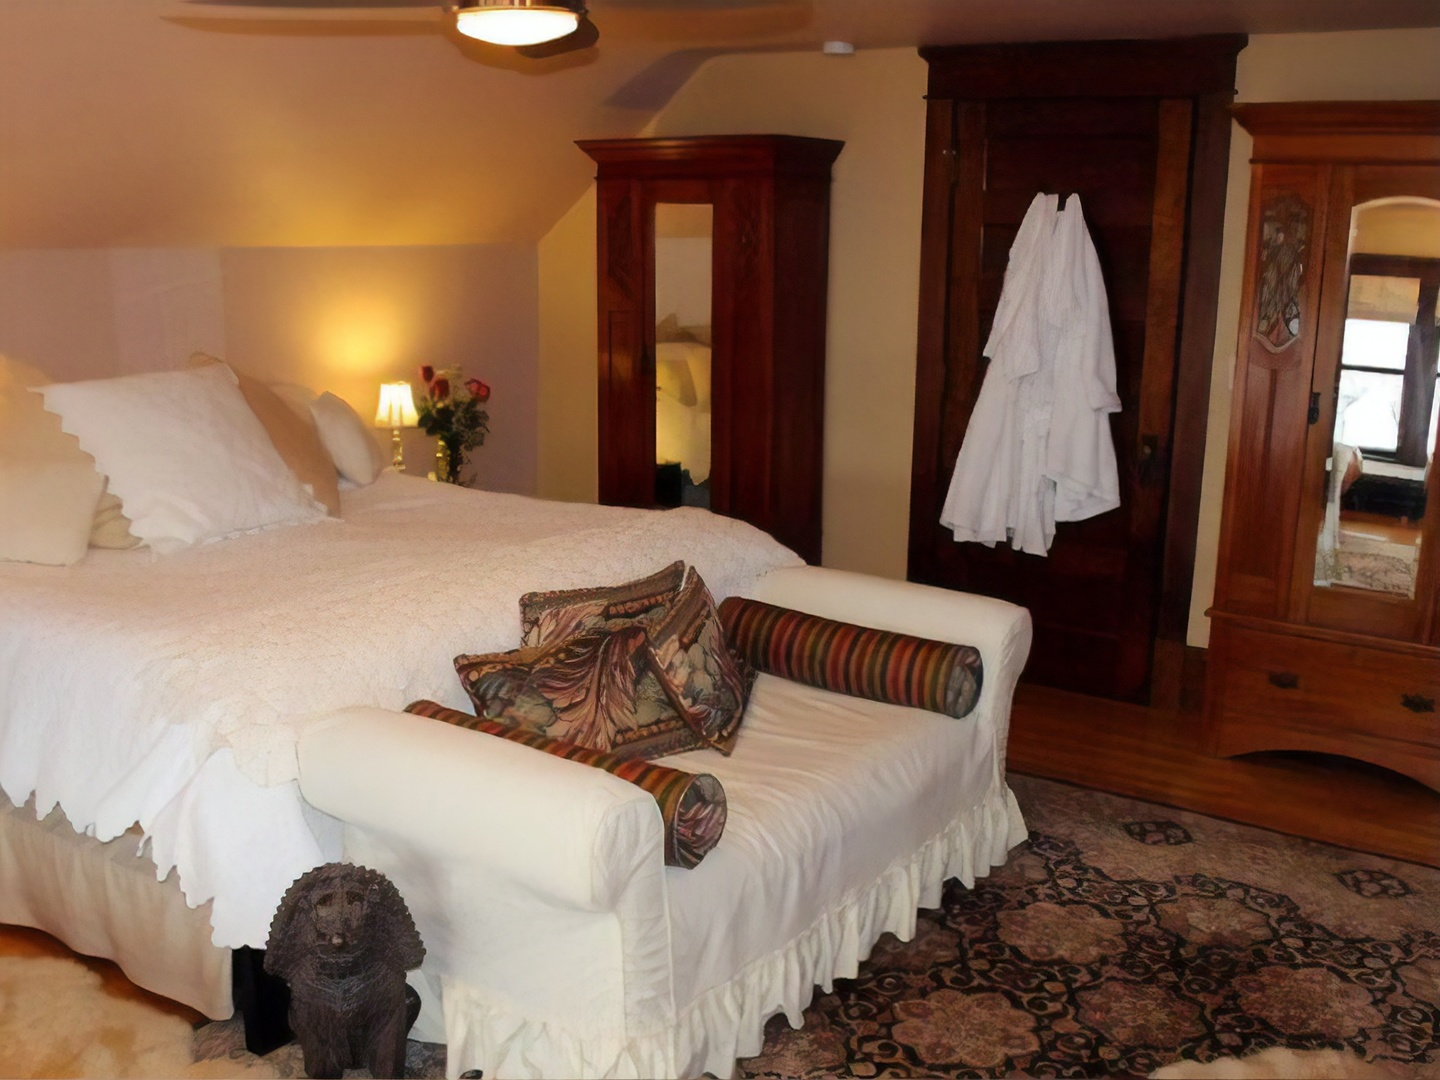 A bedroom with a bed in a hotel room at Como Lake Bed and Breakfast.